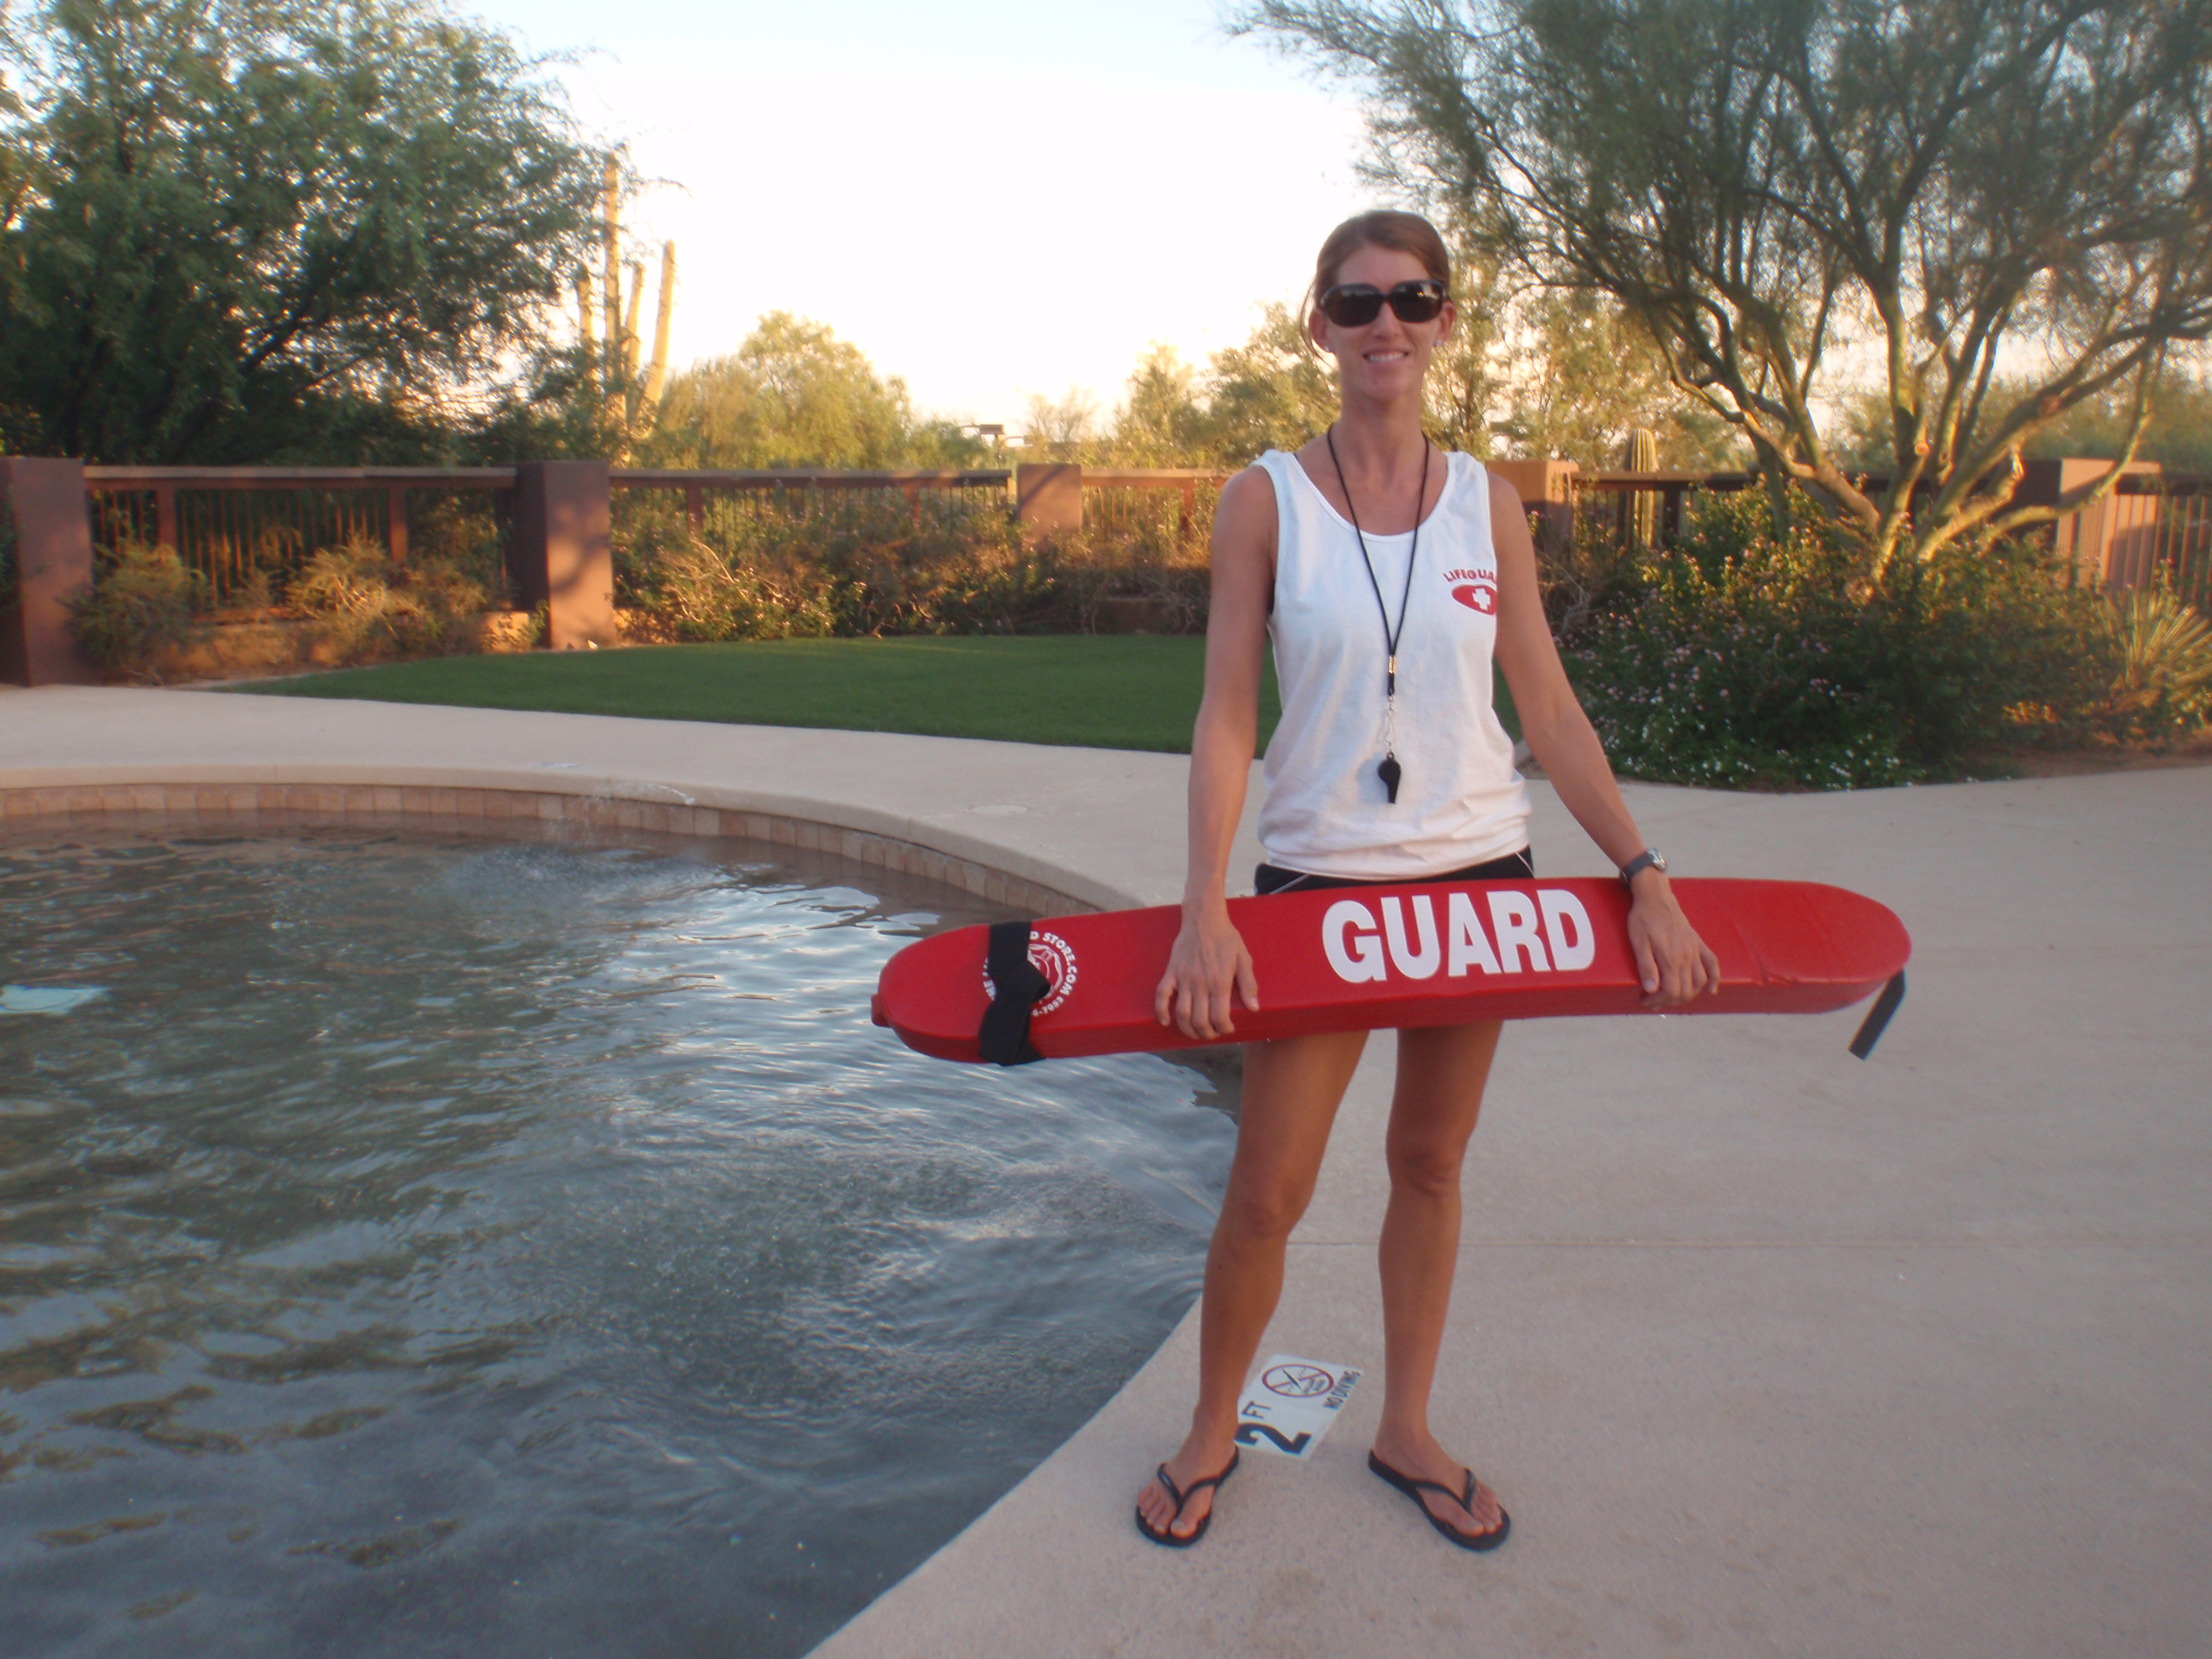 How to become a certified lifeguard? All you need to know